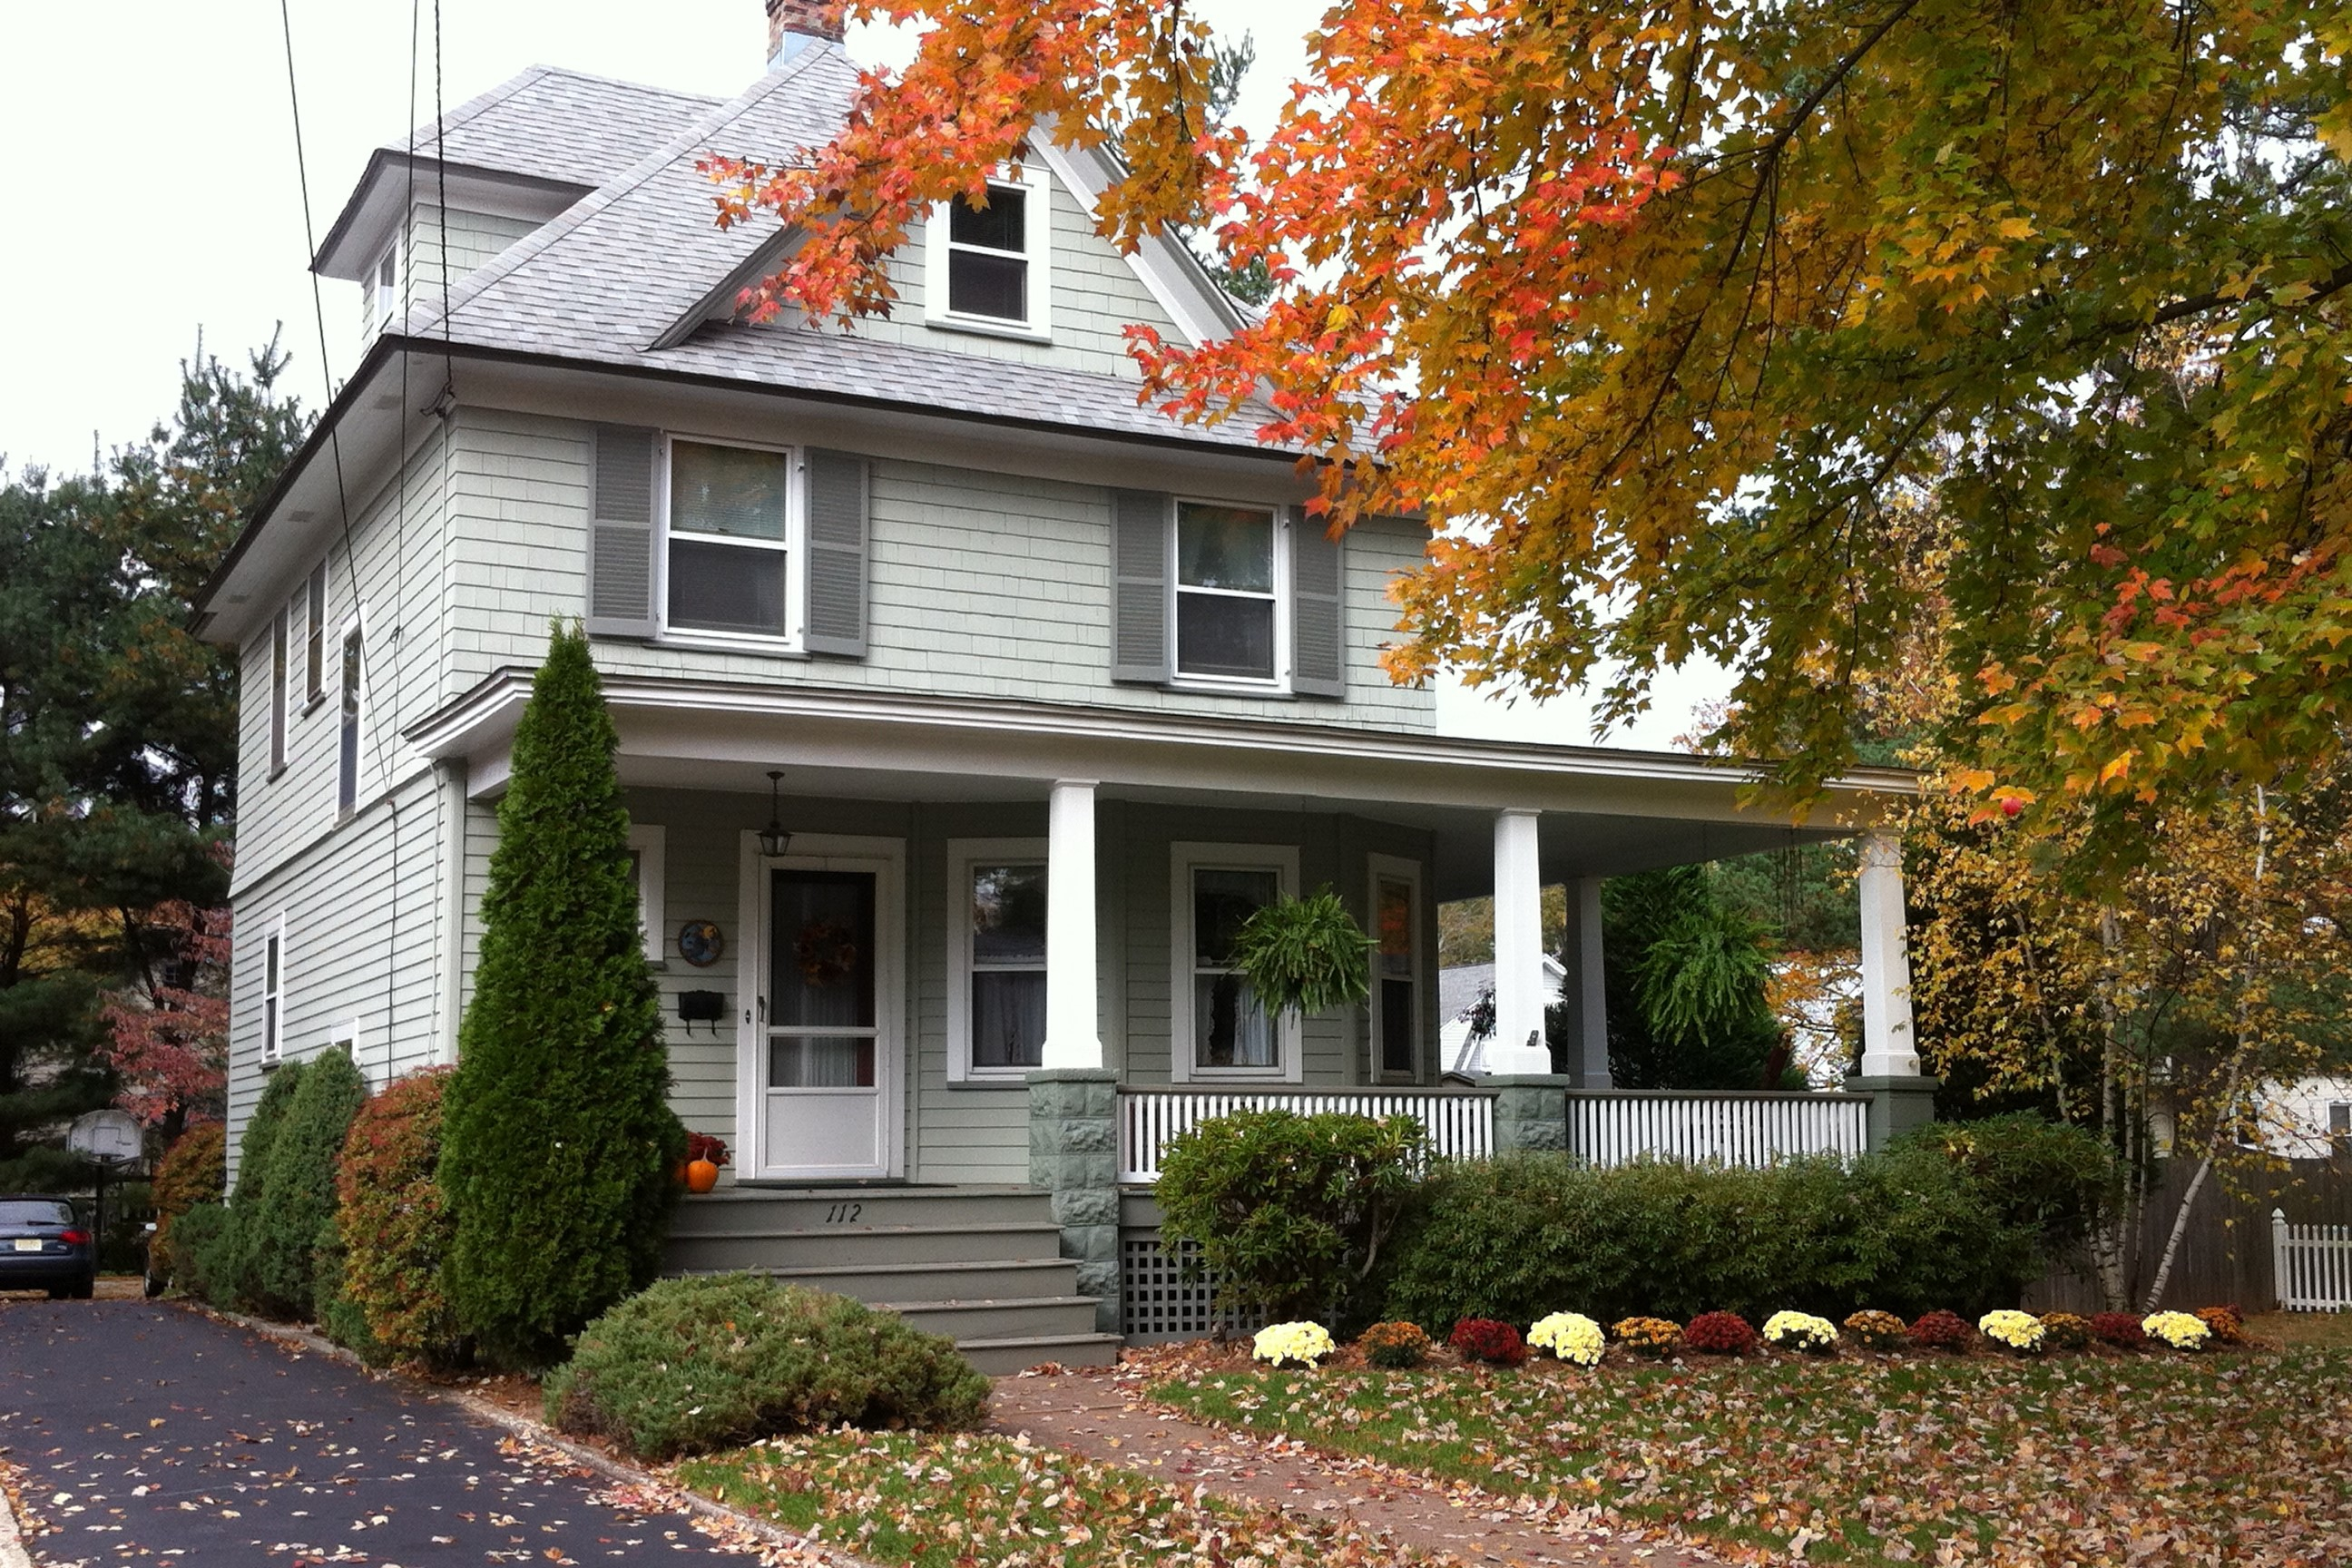 Fall Maintenance Checklist from a Professional Home Inspector